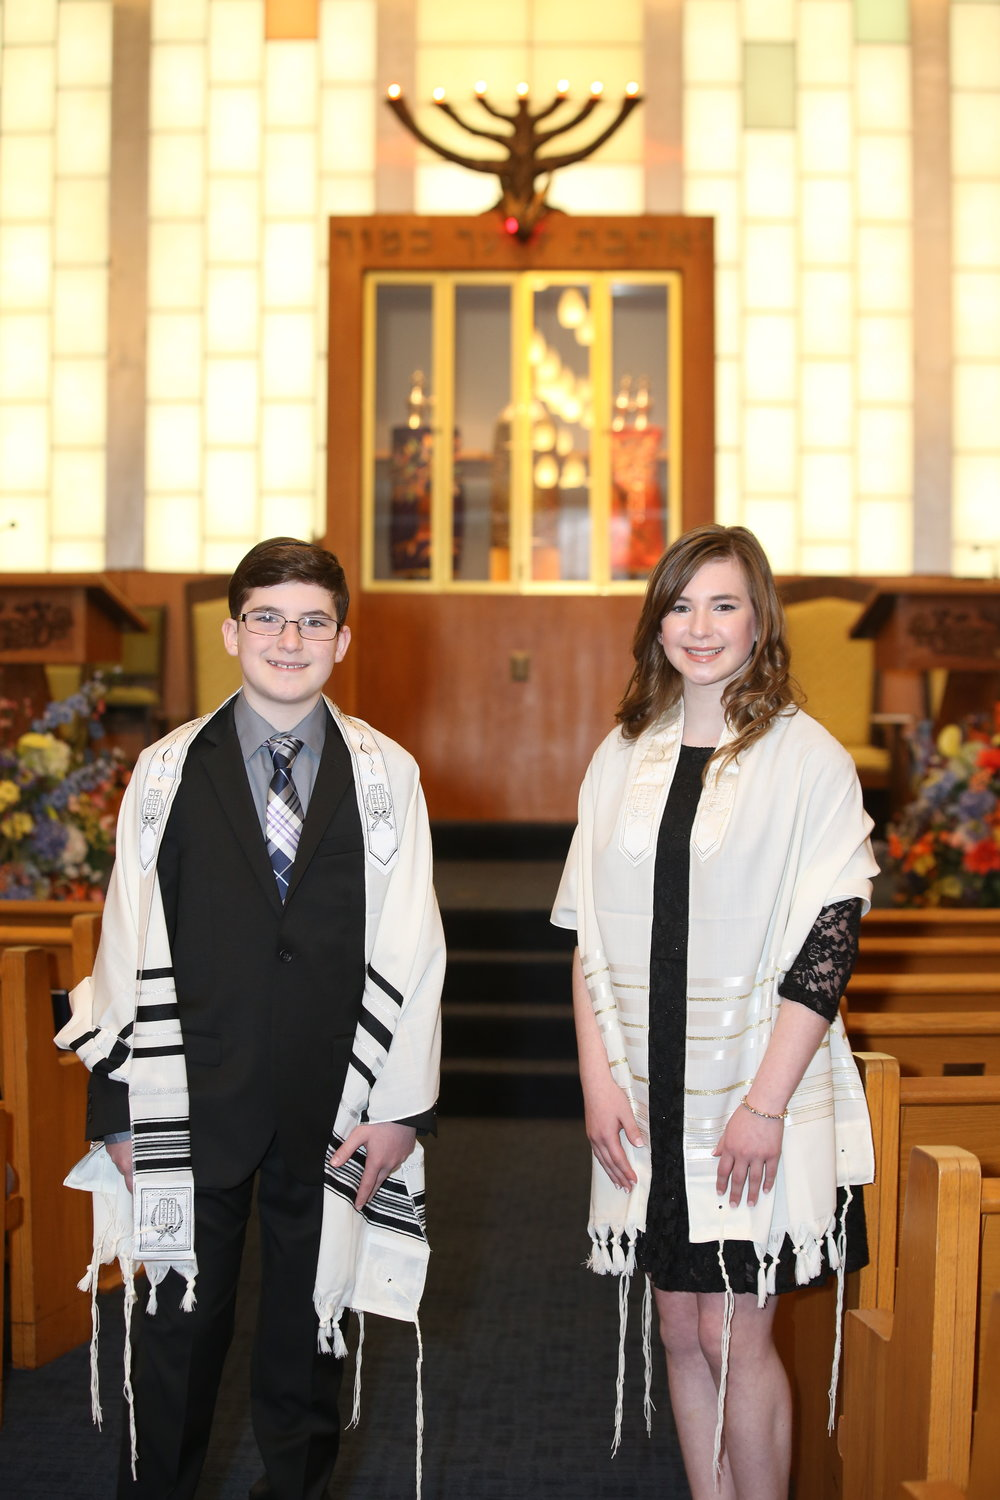 B'nai Mitzvah Service at Temple Israel of Northern Westchester, New York